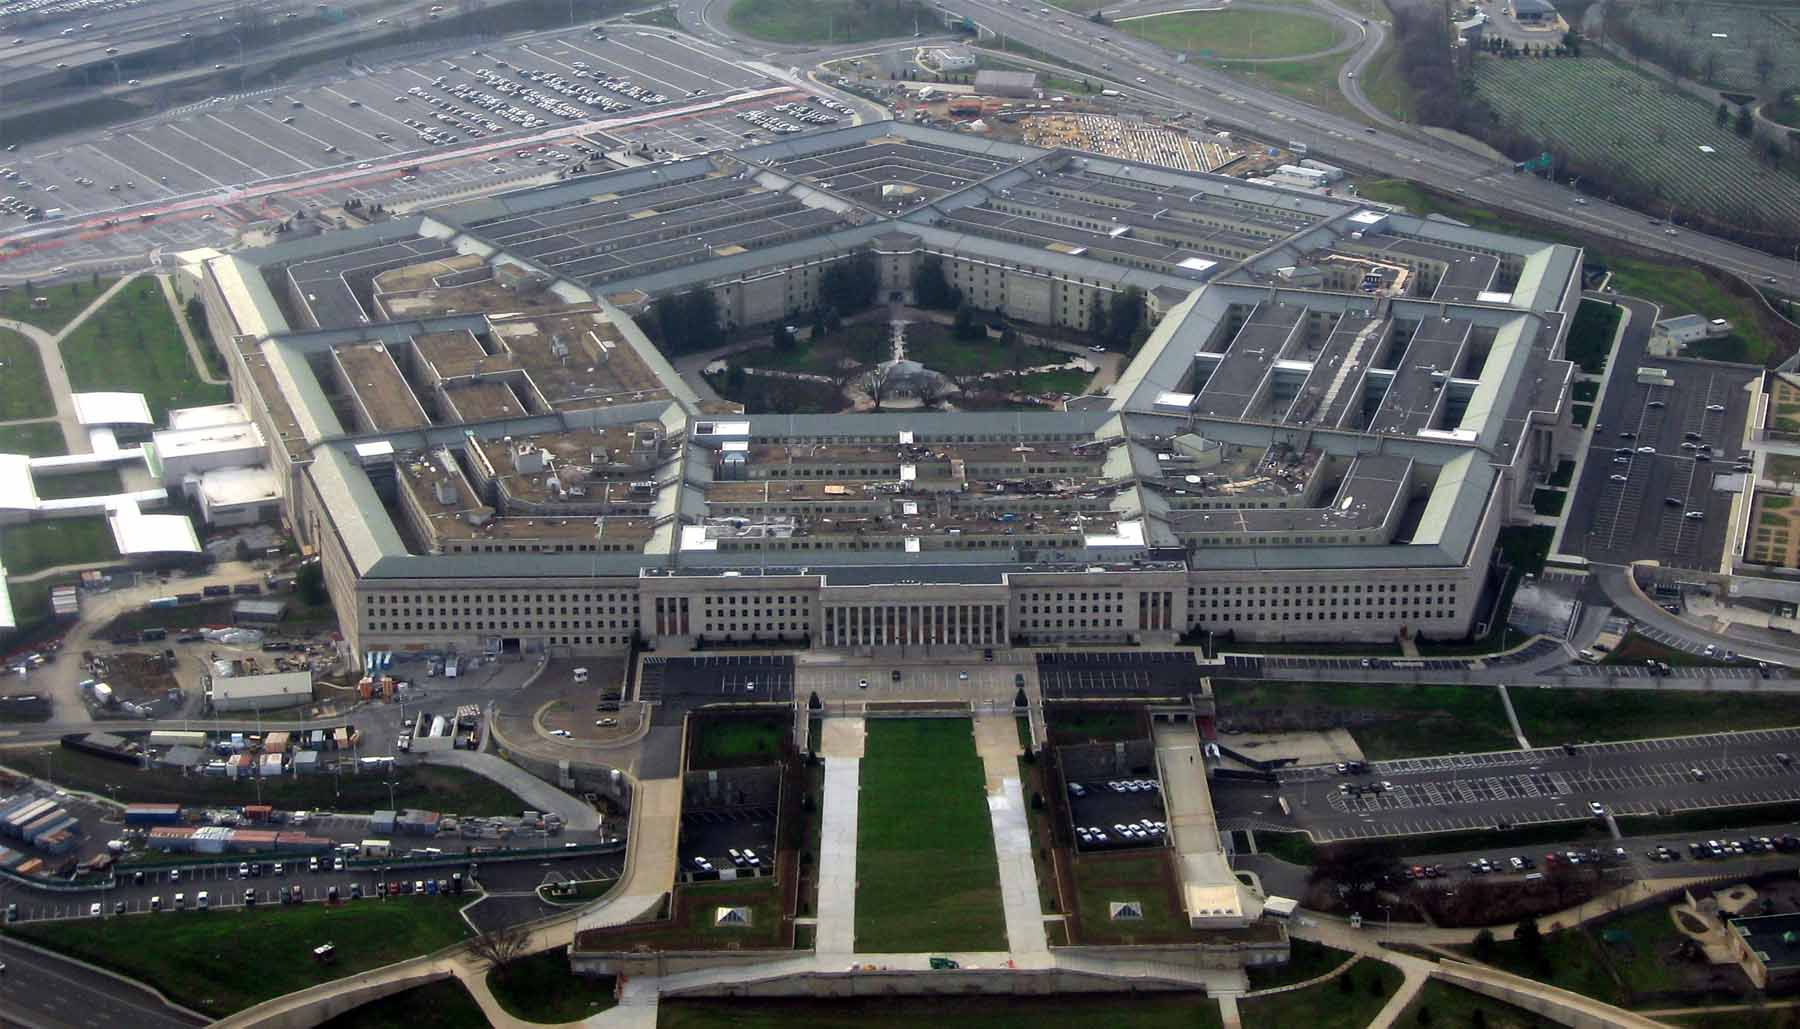 CNBC – Pentagon woos Silicon Valley talent